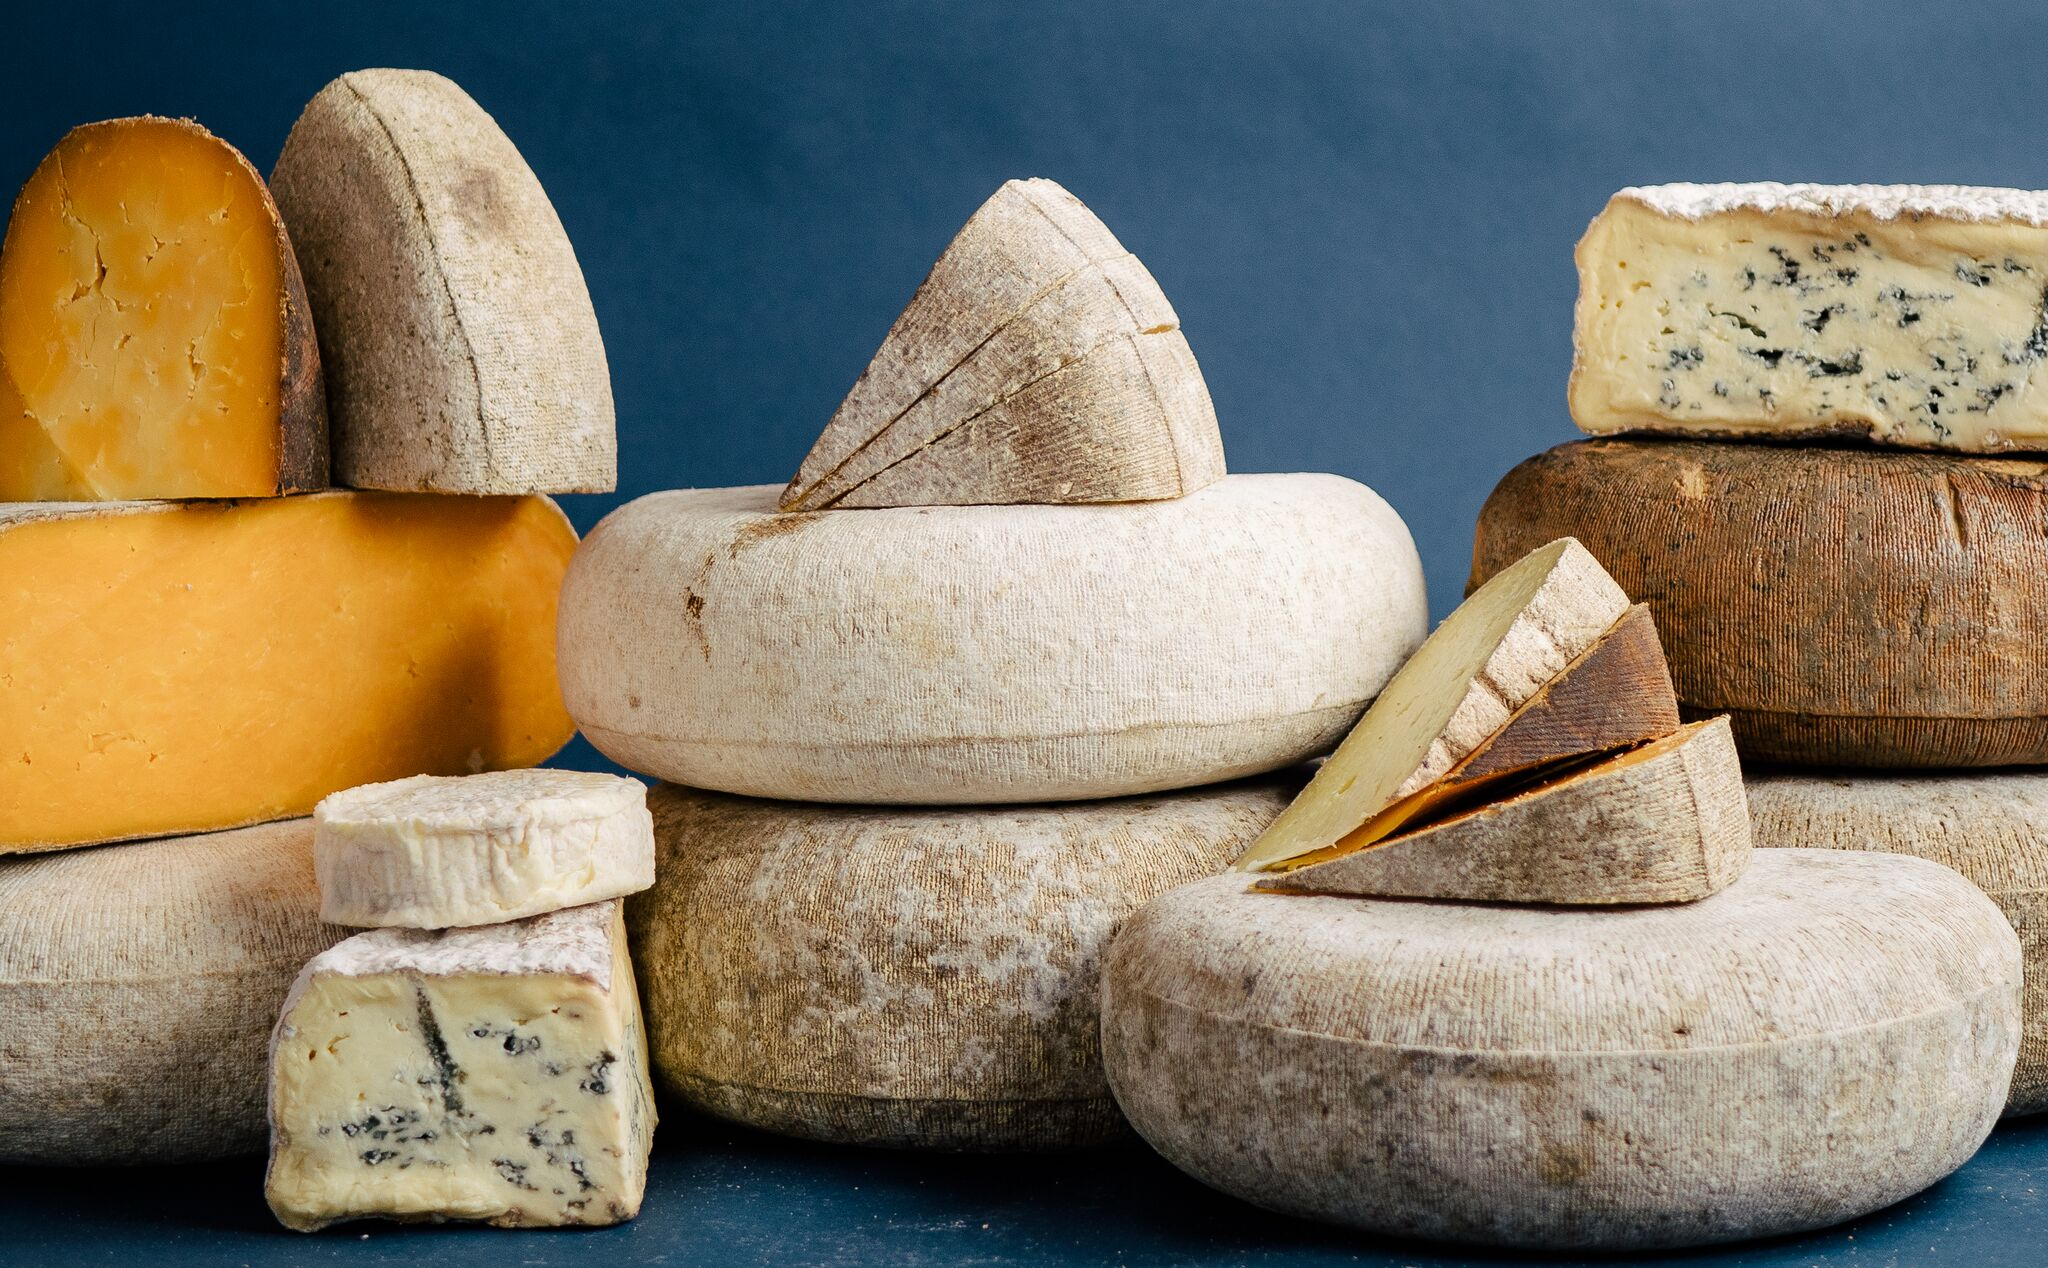 Celebrating Cheese with Martin Moyden